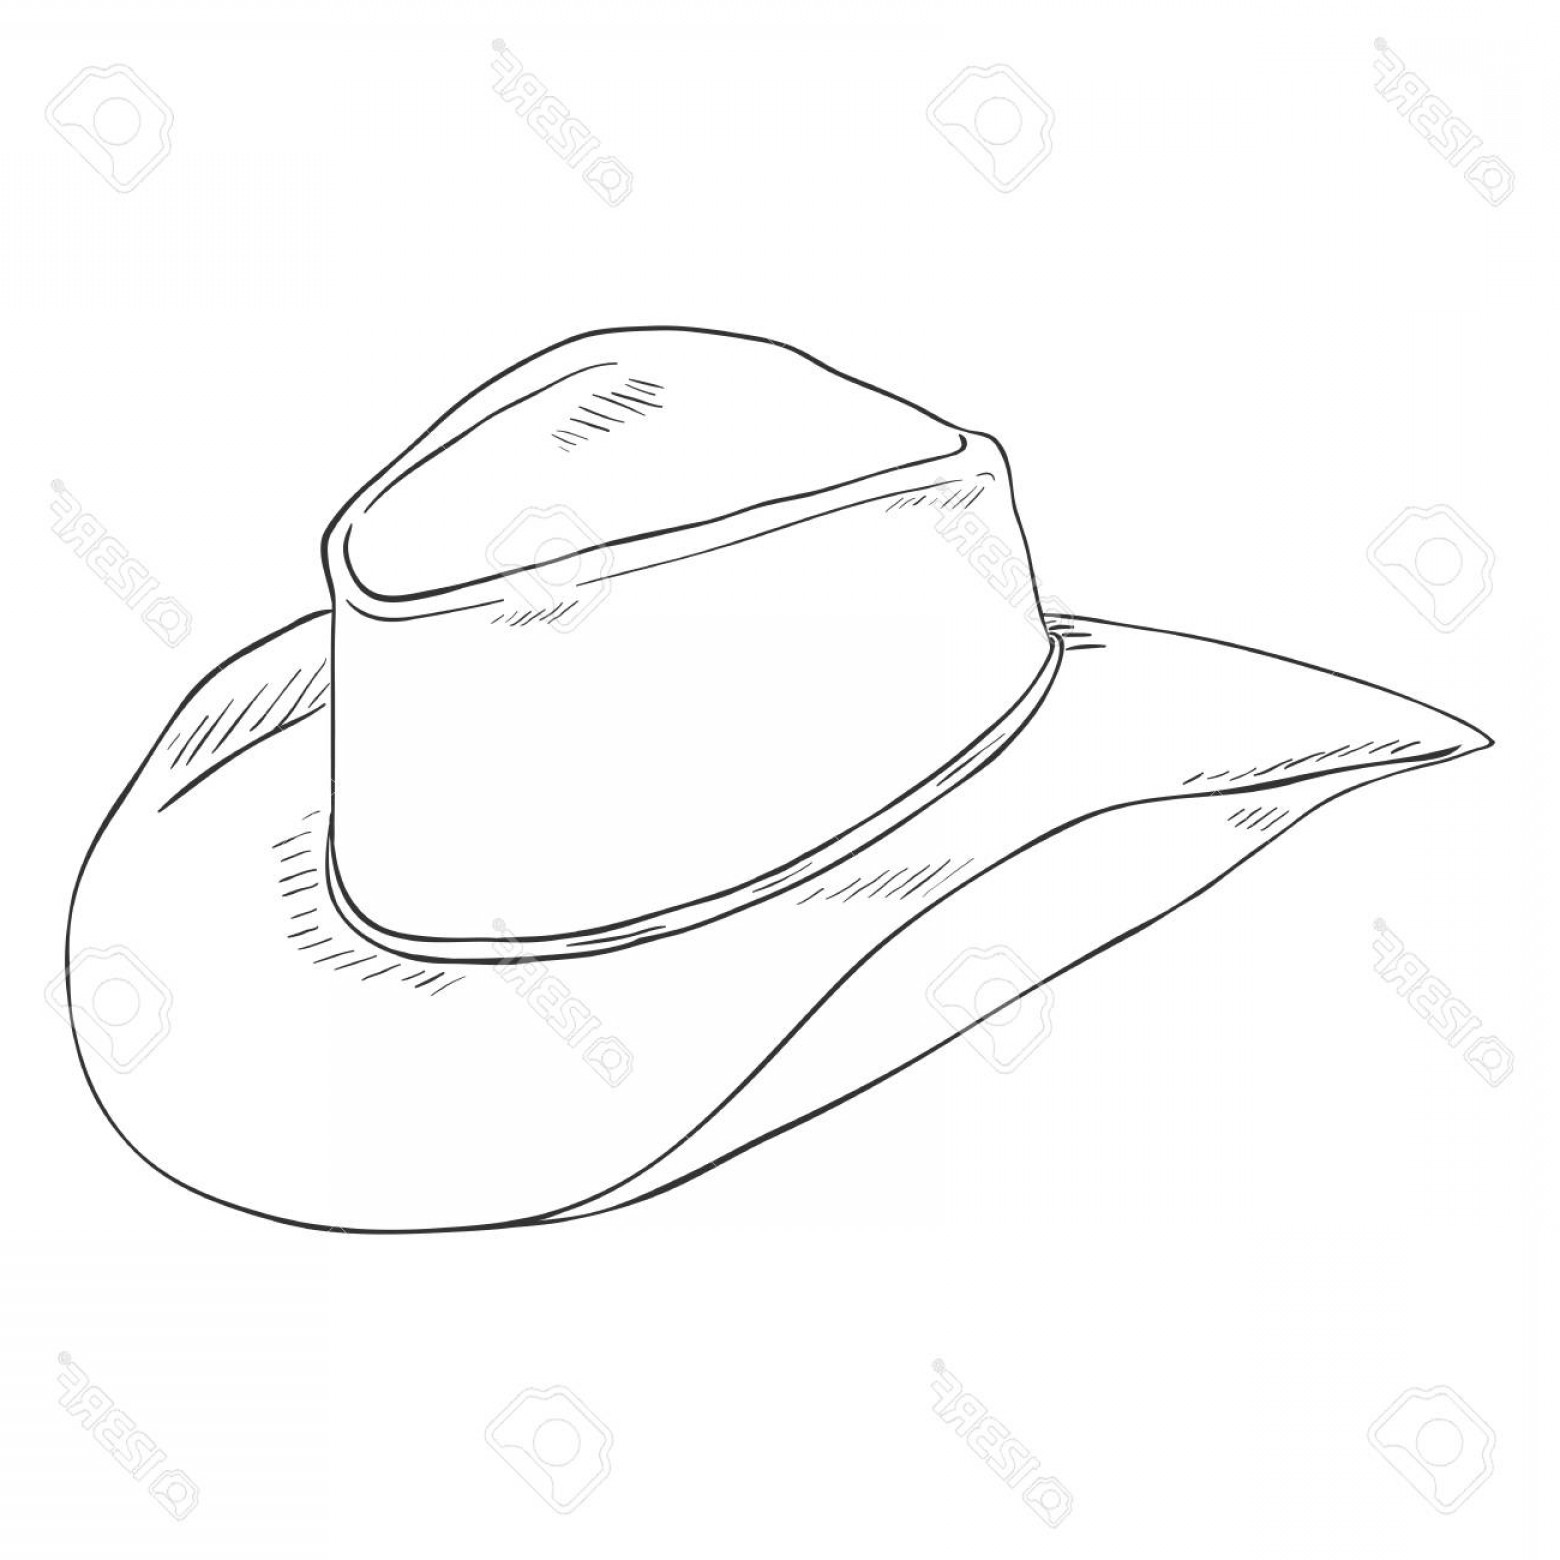 Cowboys Line Drawings Vector: Photostock Vector Vector Single Sketch Cowboys Hat On White Background